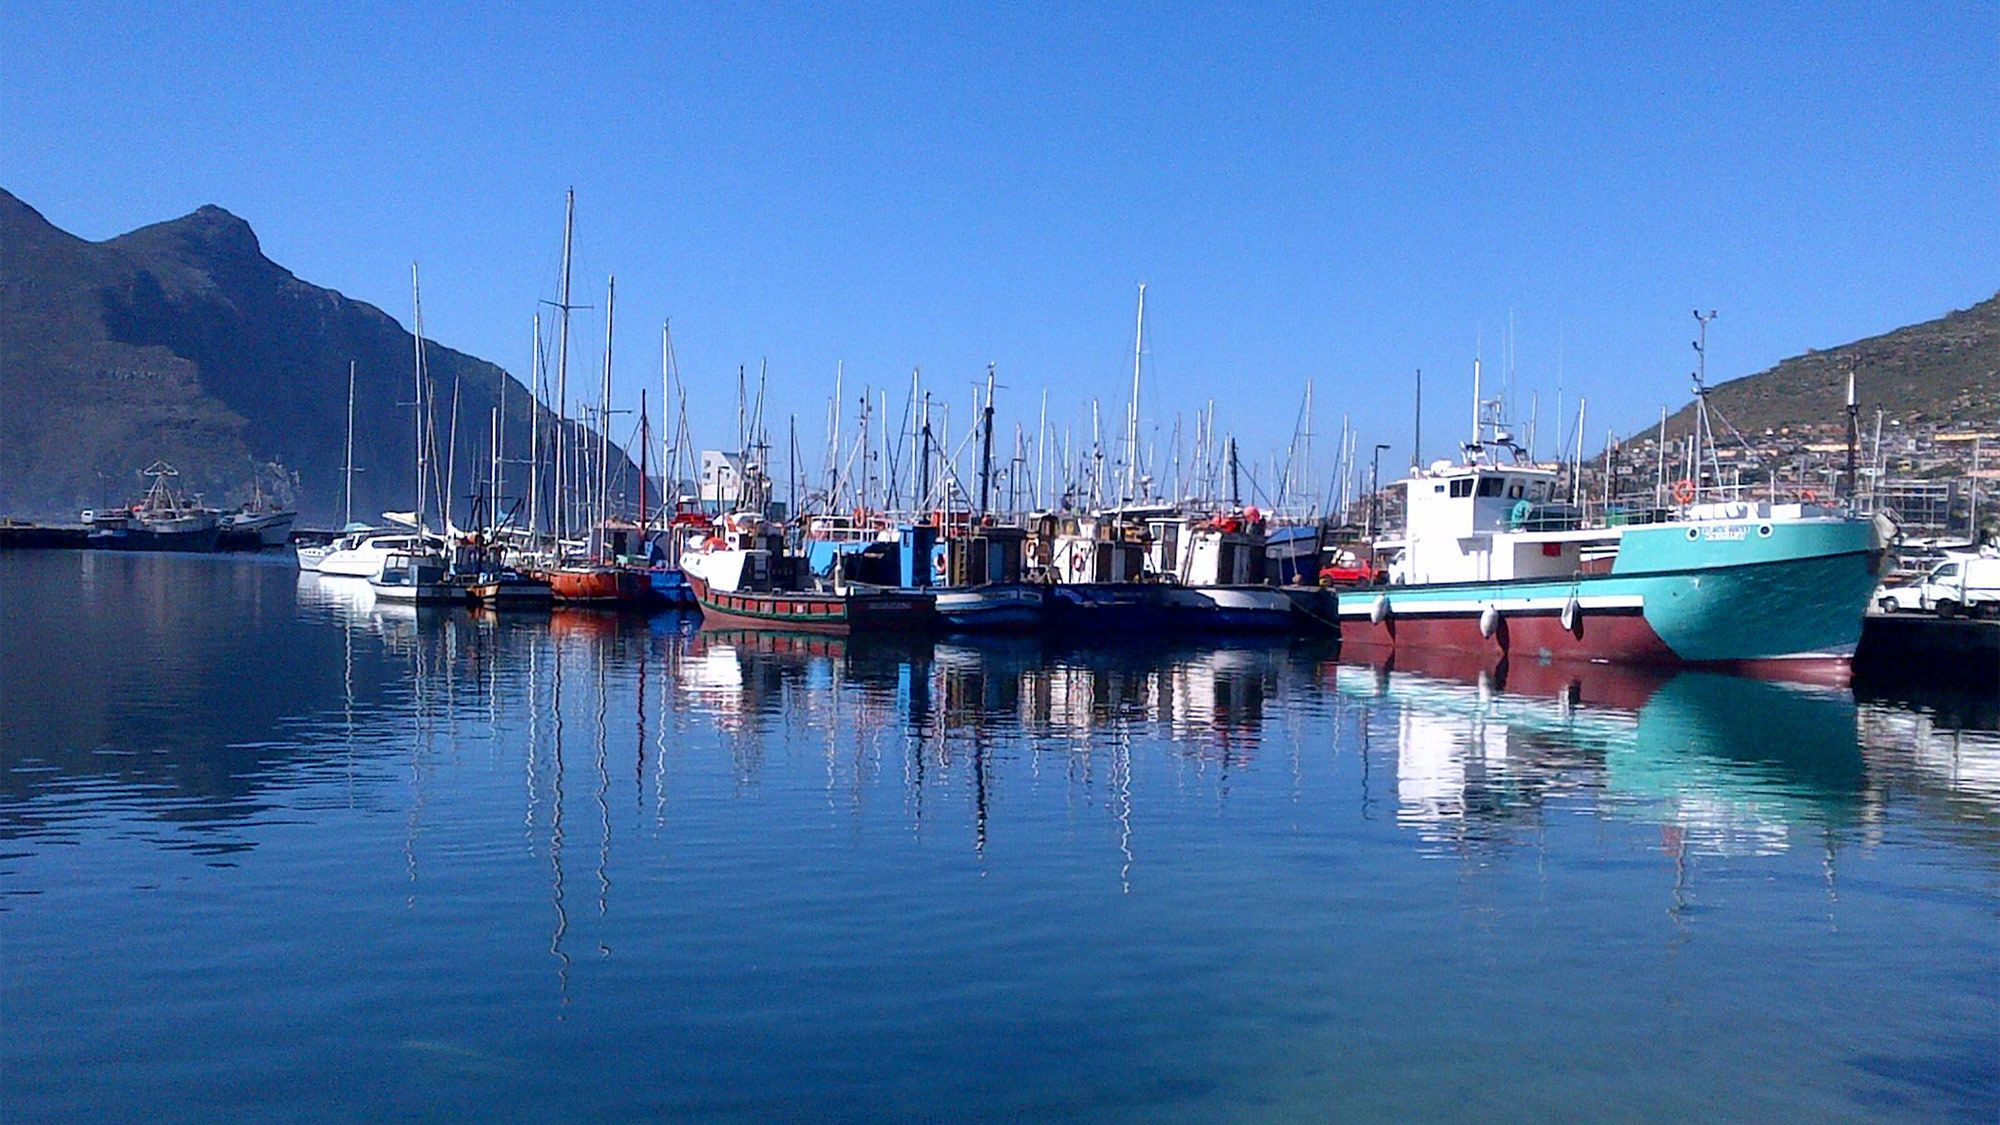 Reflective view of Cape Peninsula with sailboats in South Africa